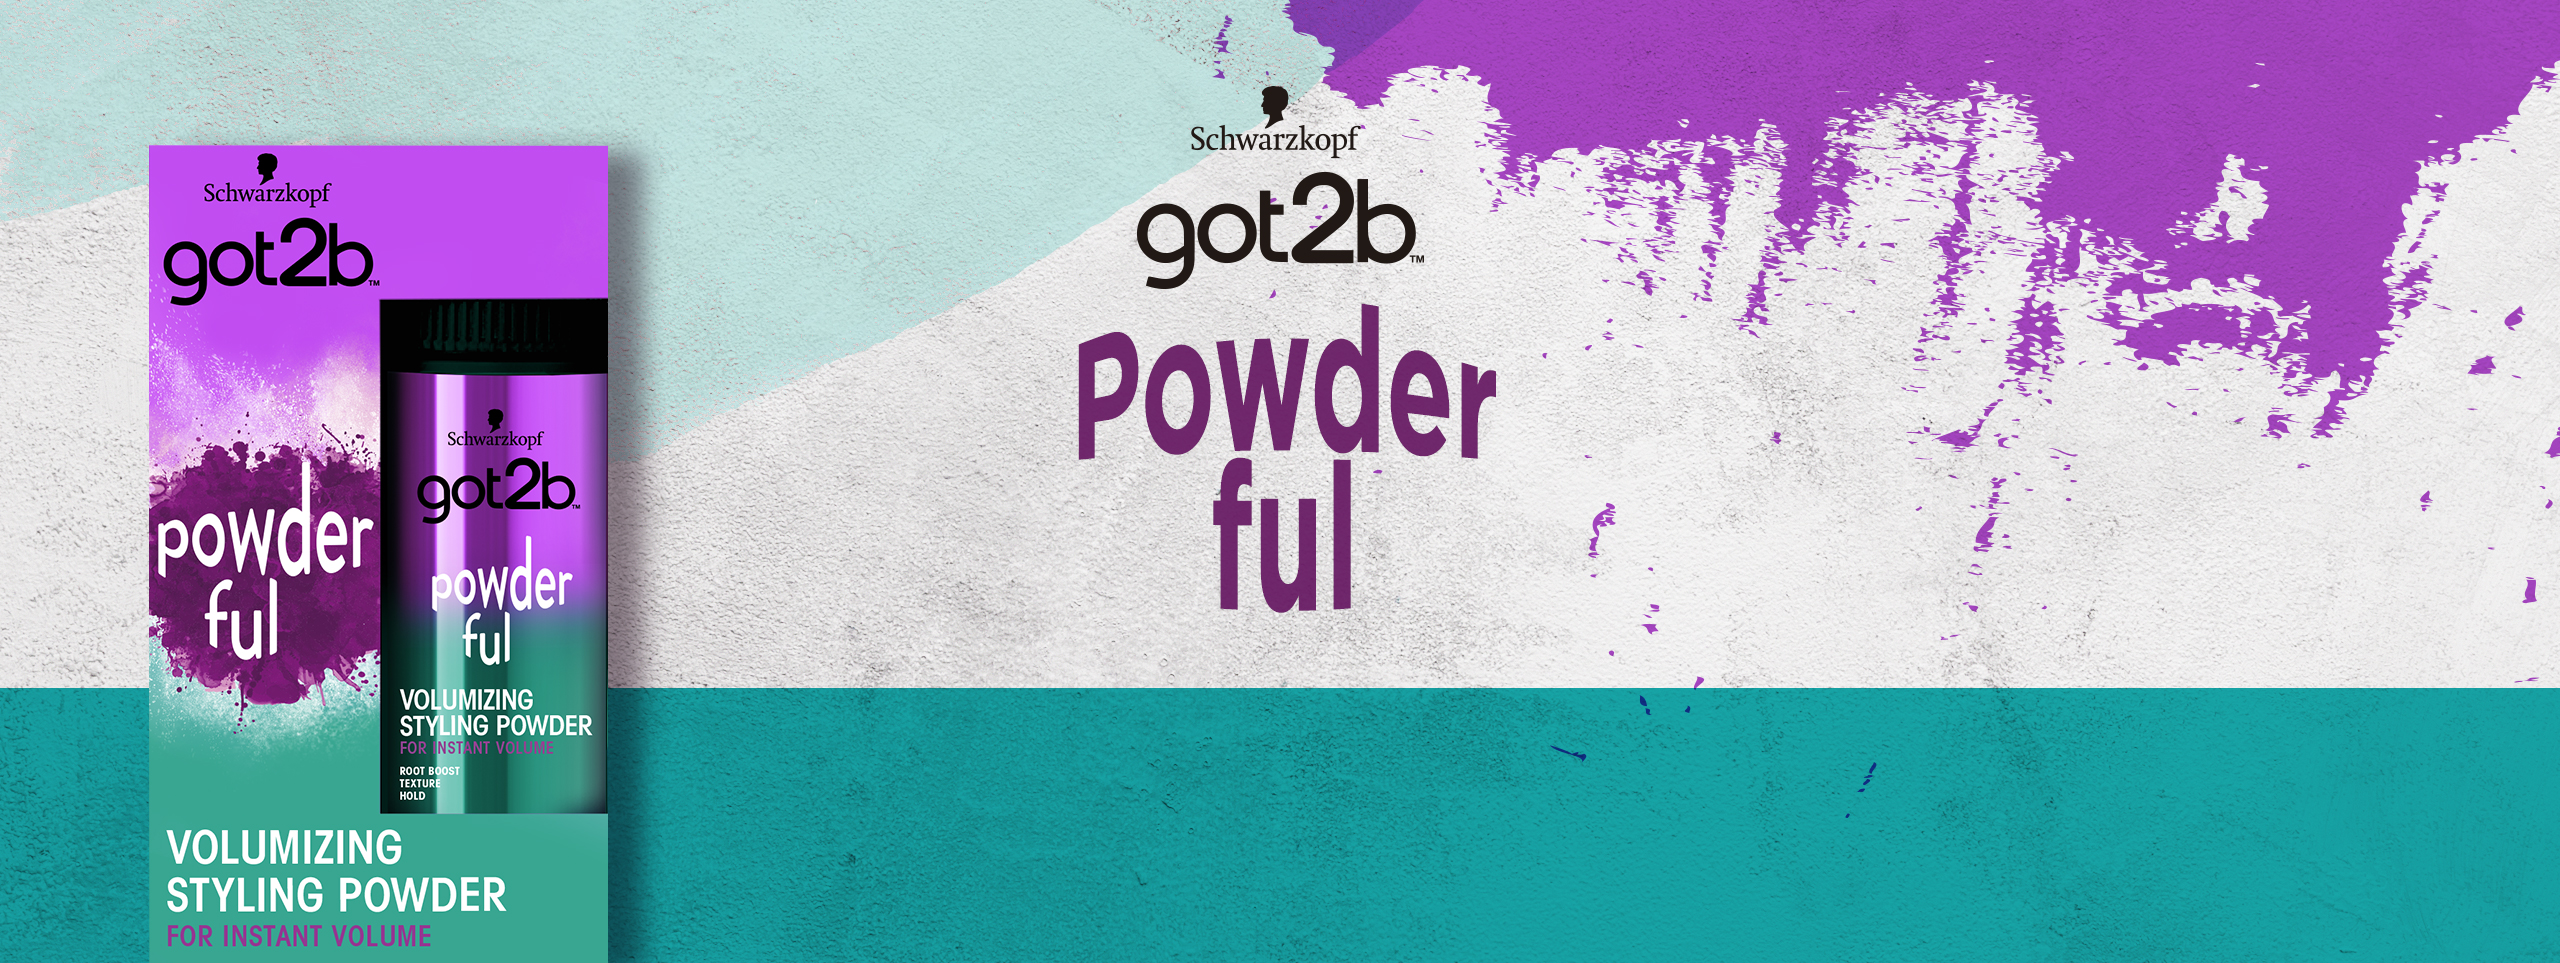 Powder_ful_BG_2560x963